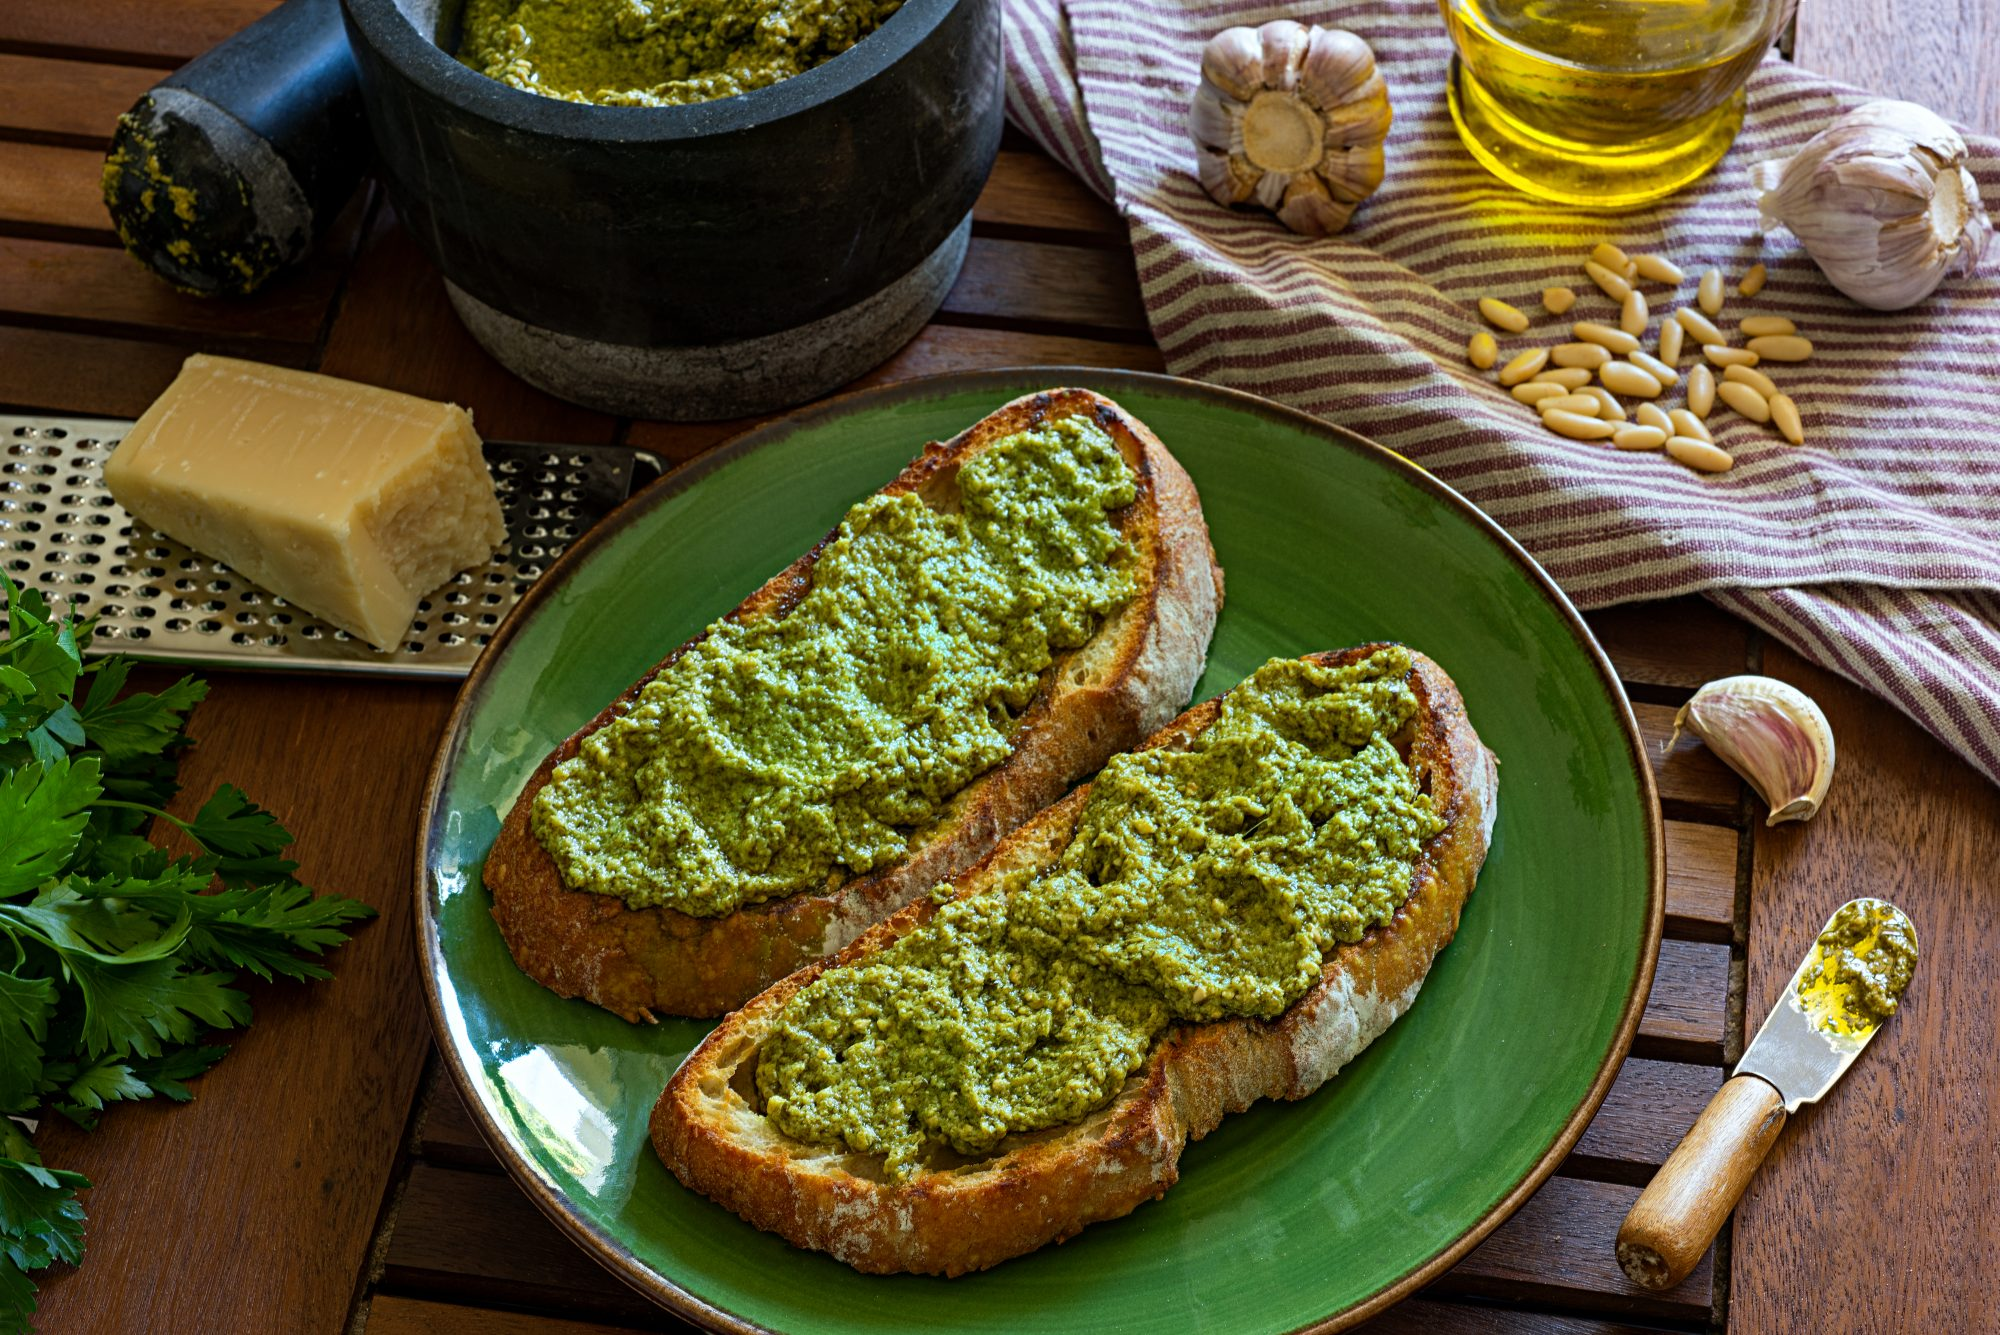 Pesto Spread on Bread